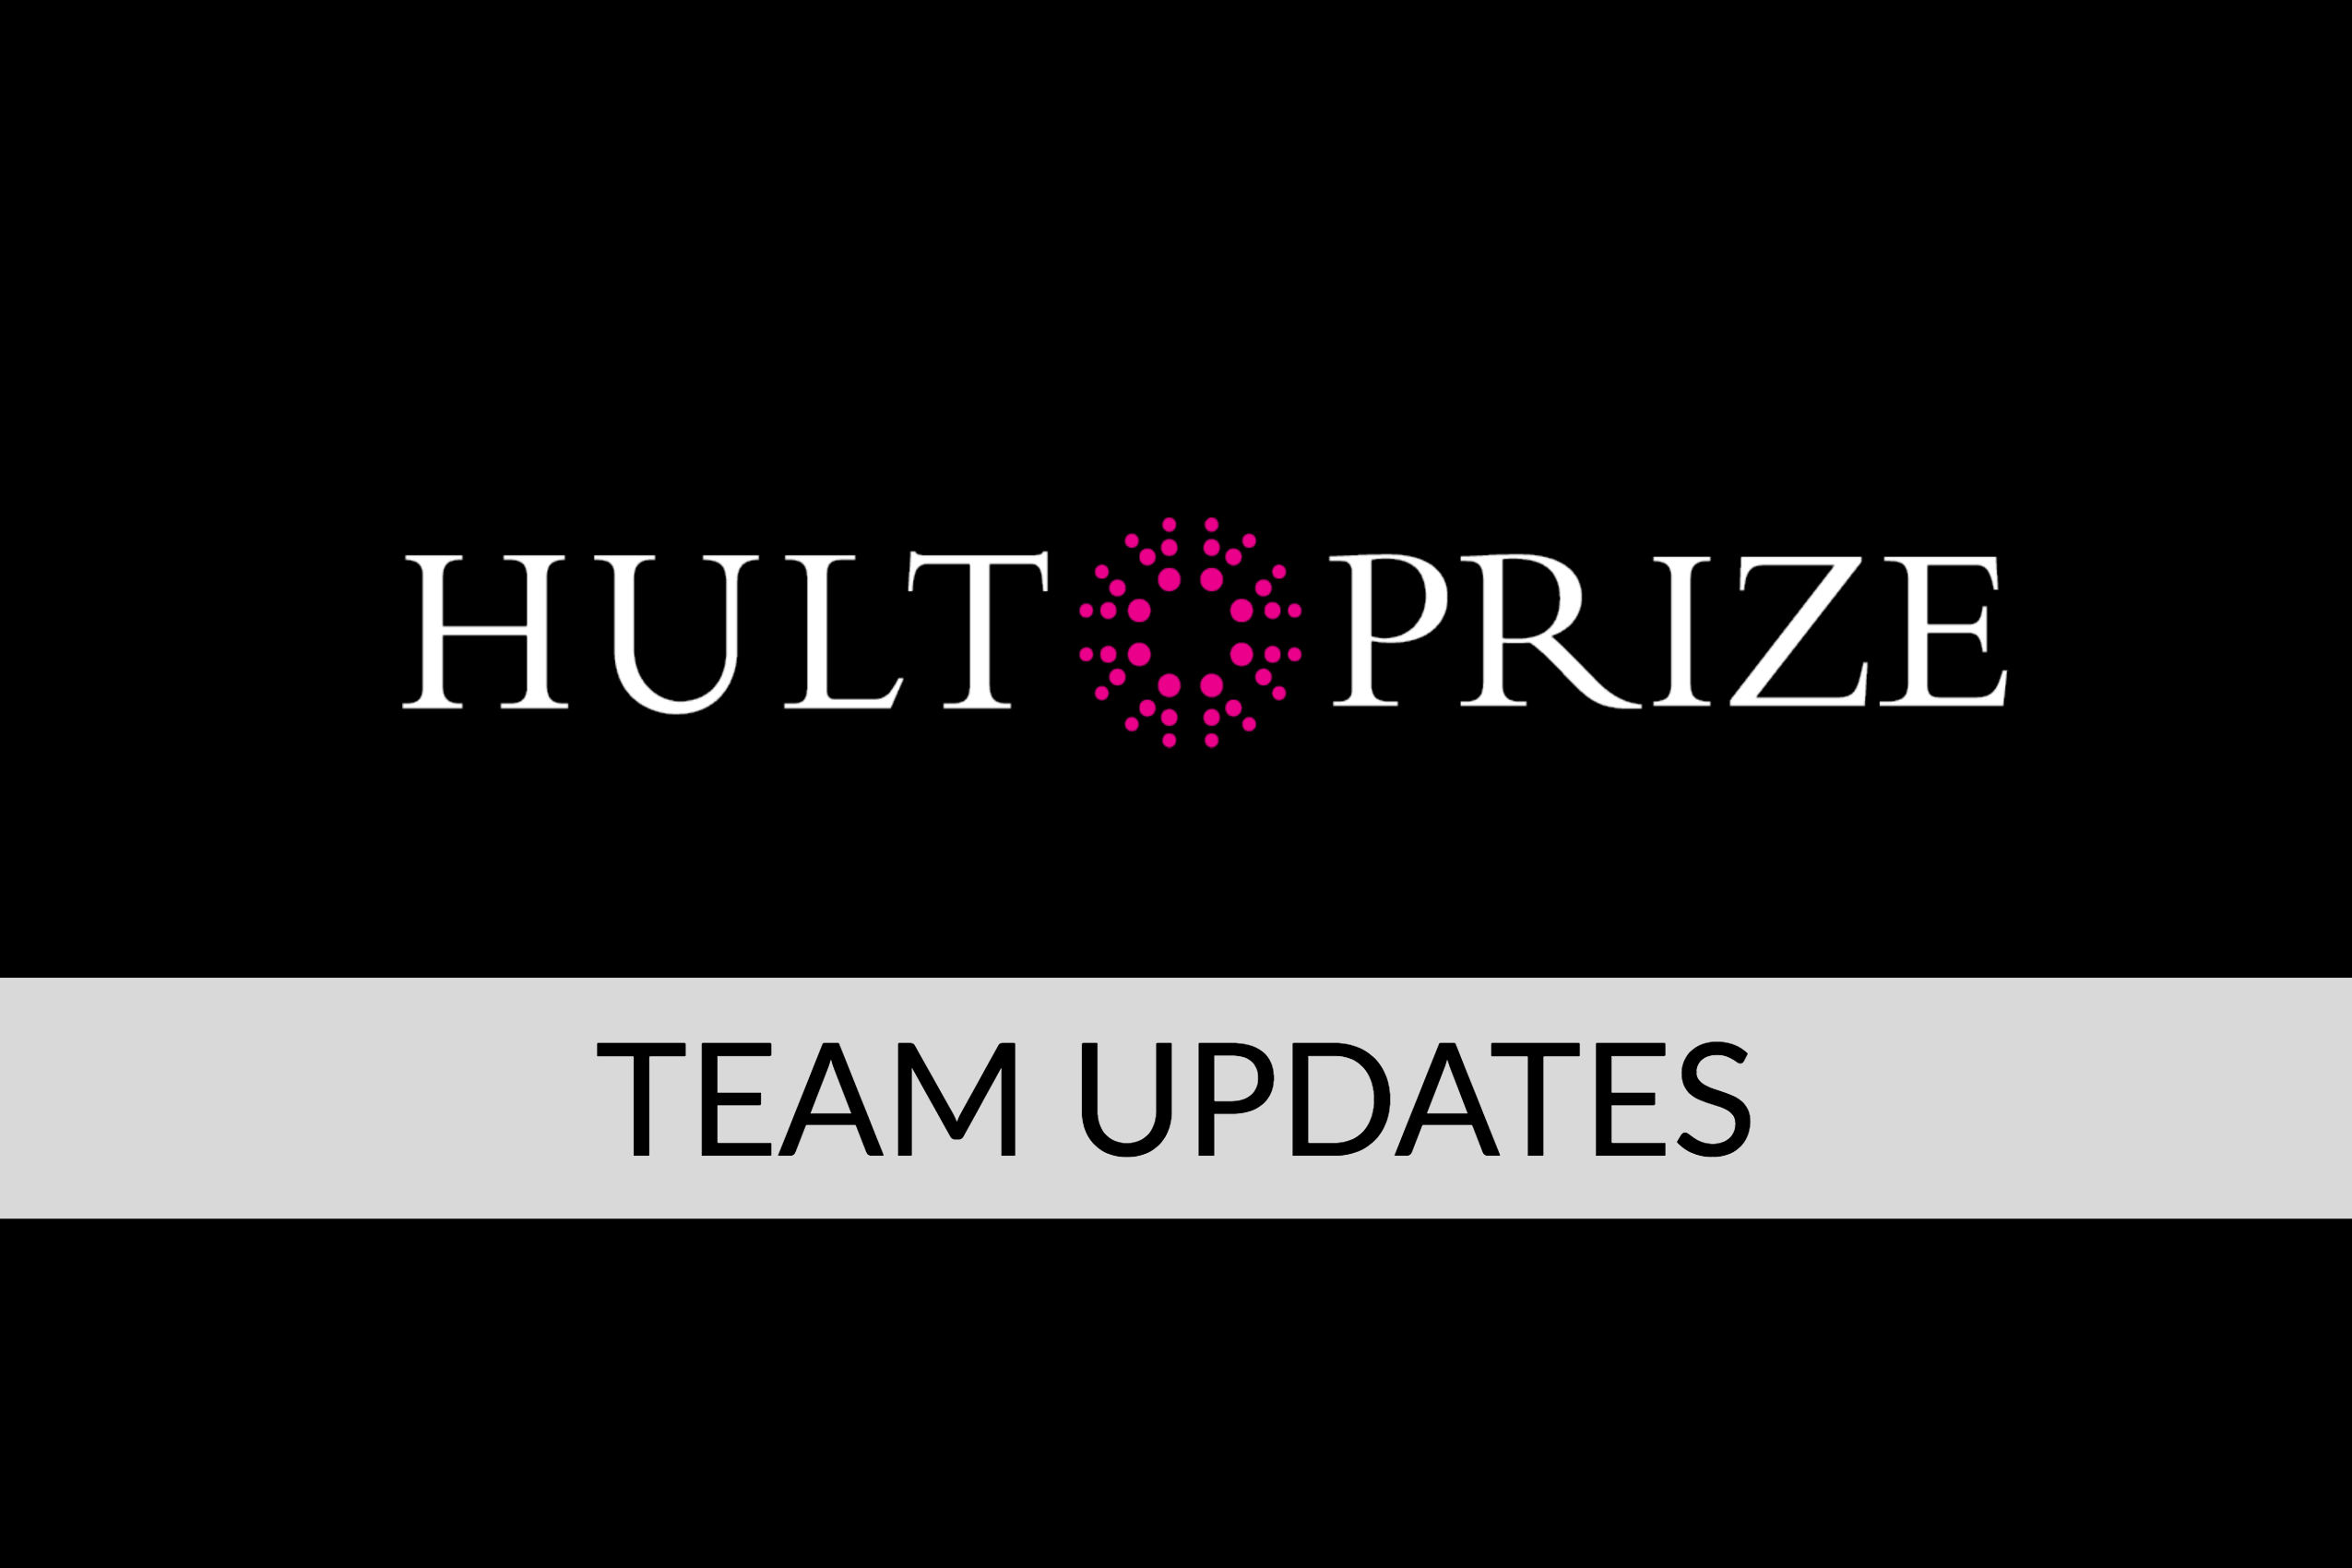 Text graphic - Hult Prize Team Updates